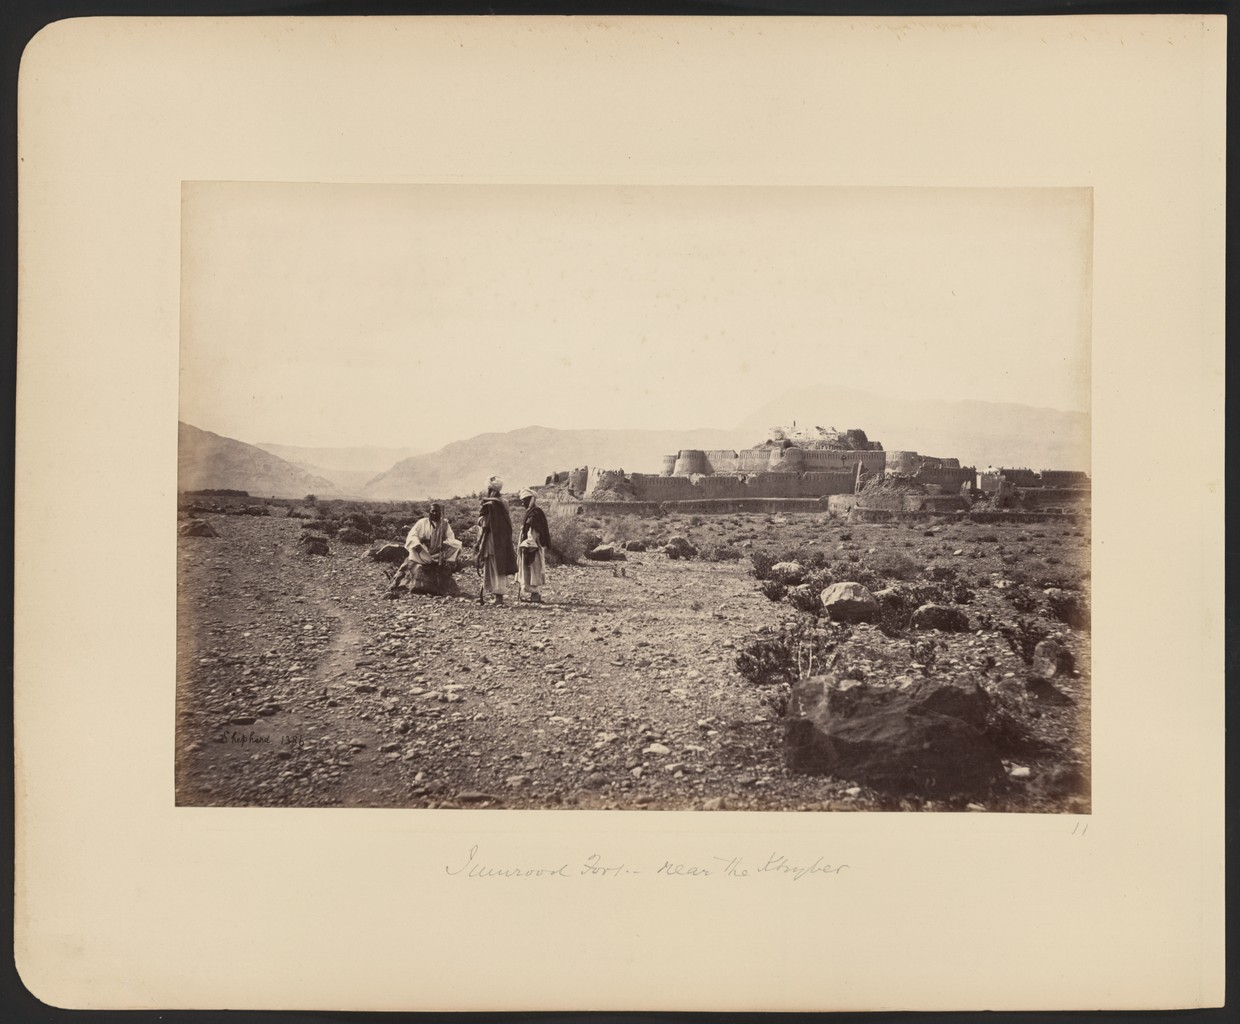 Jamrūd Fort near the Khyber during the Second Anglo-Afghan War of 1878-1880.